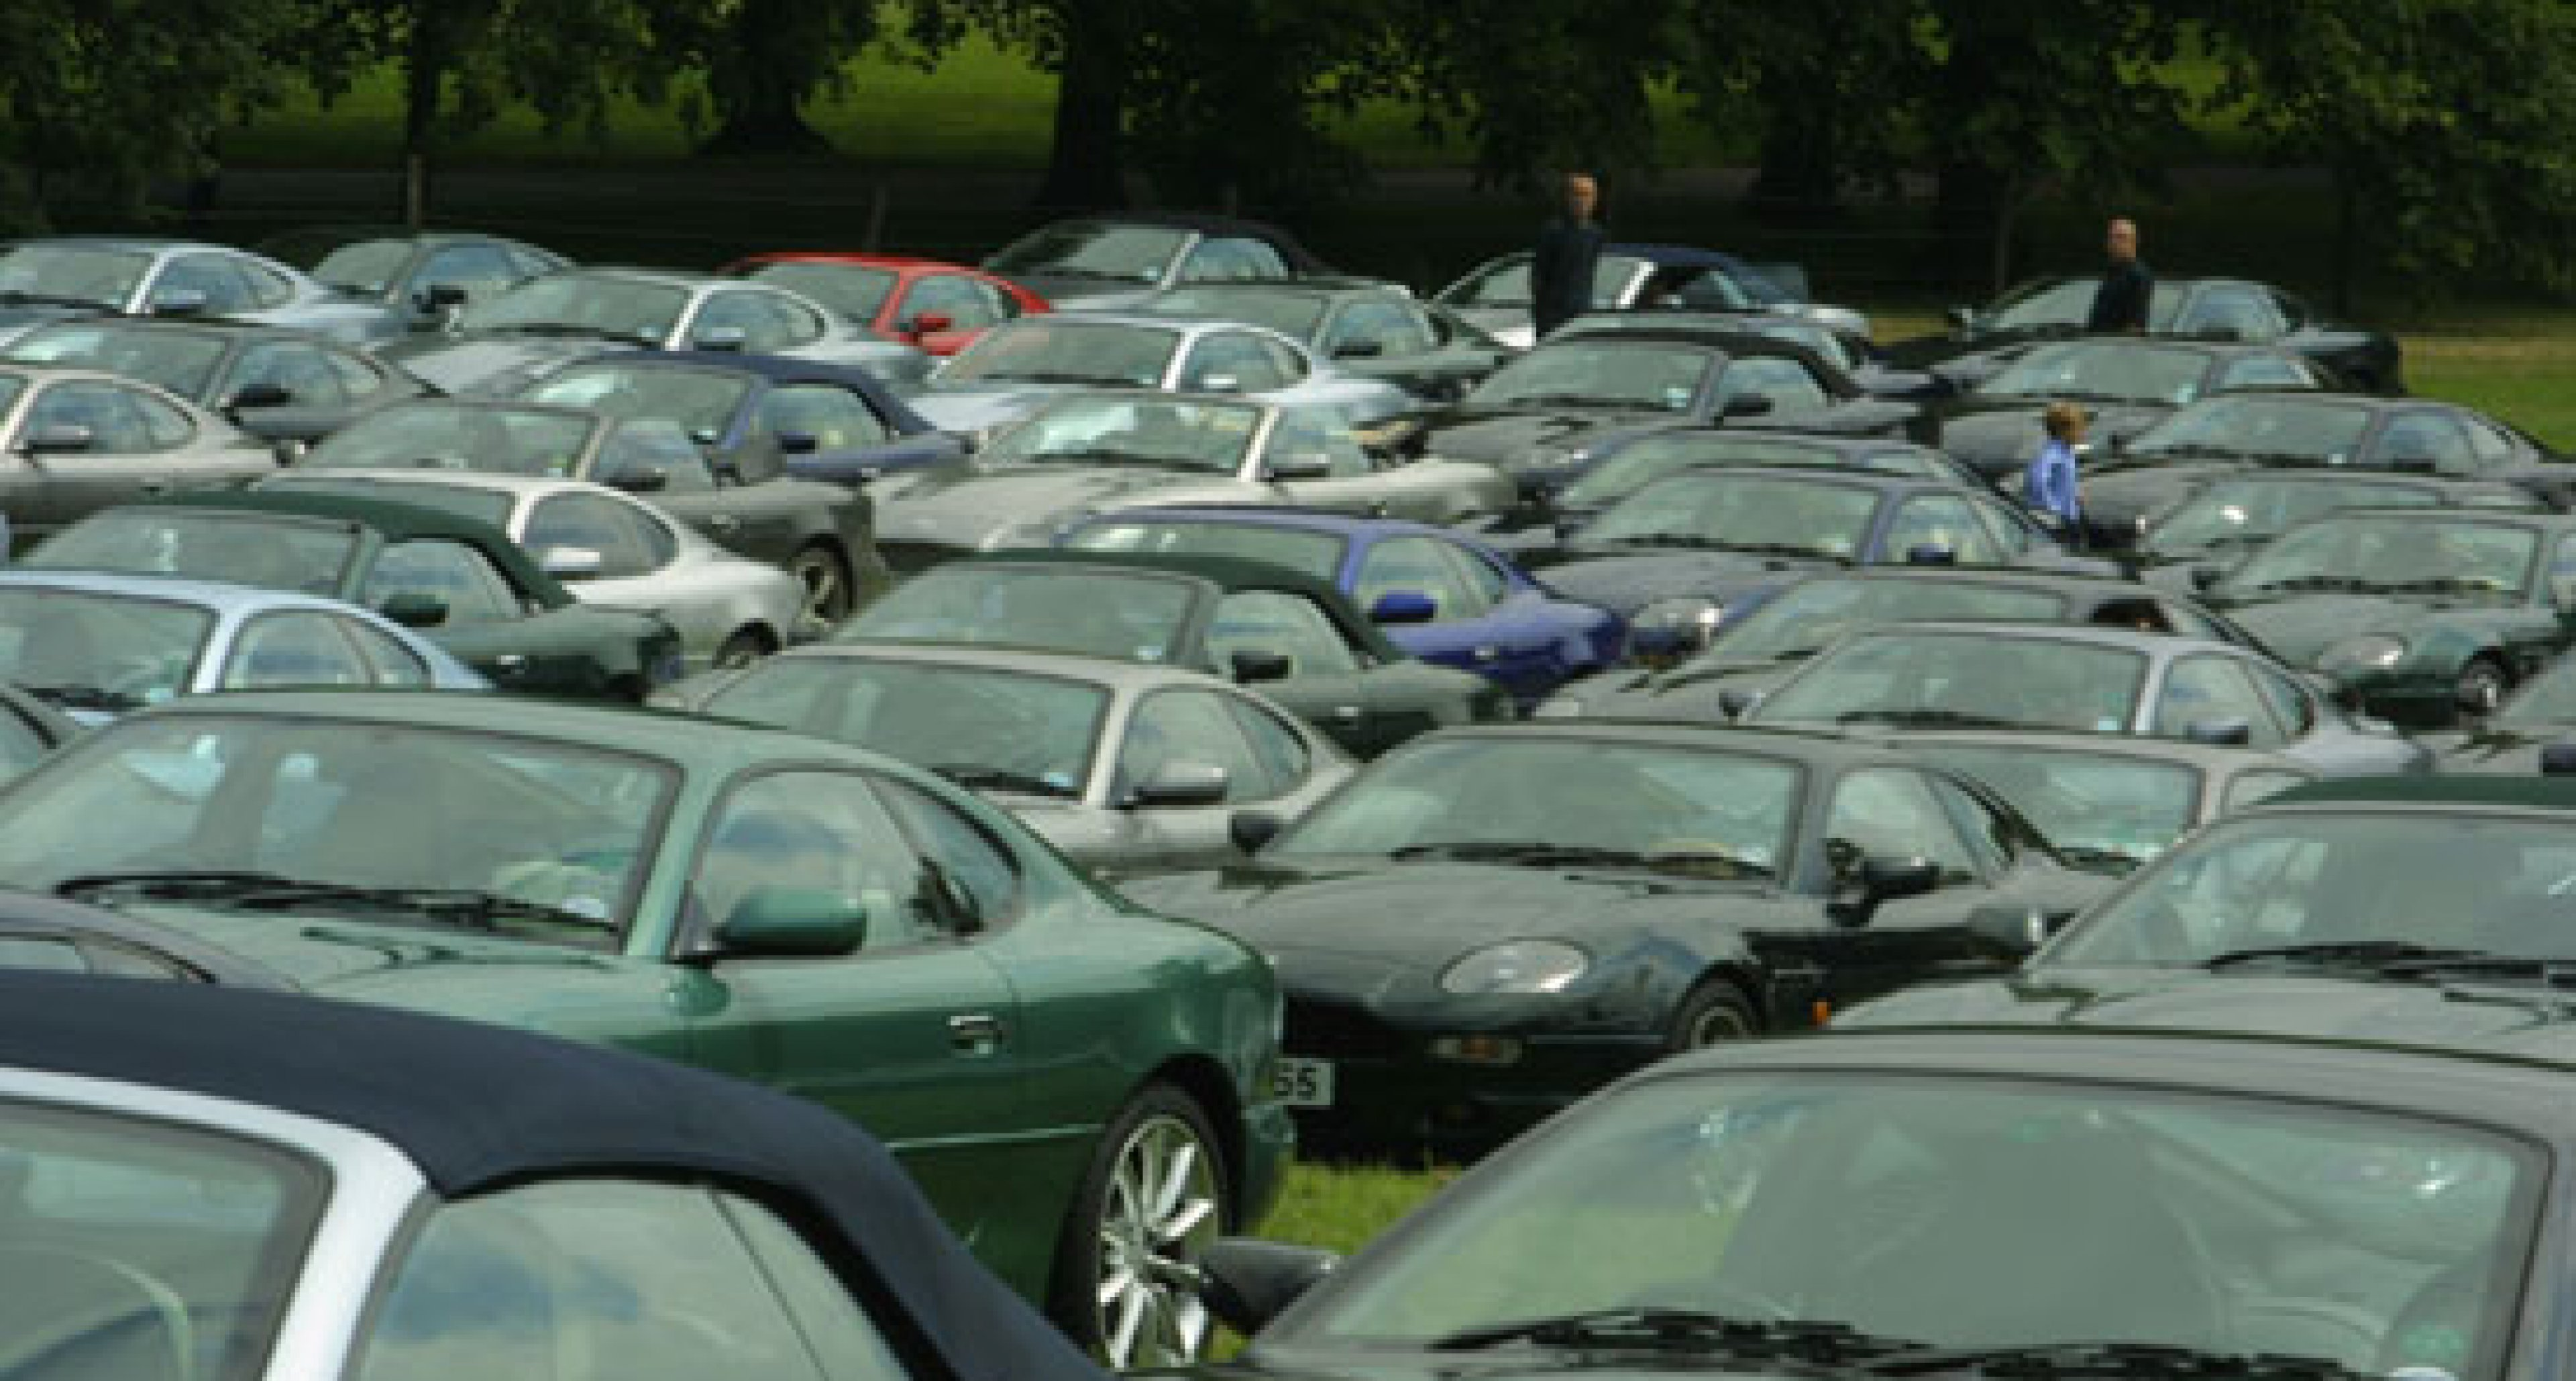 World's Largest Ever Meeting of Aston Martin DB7s